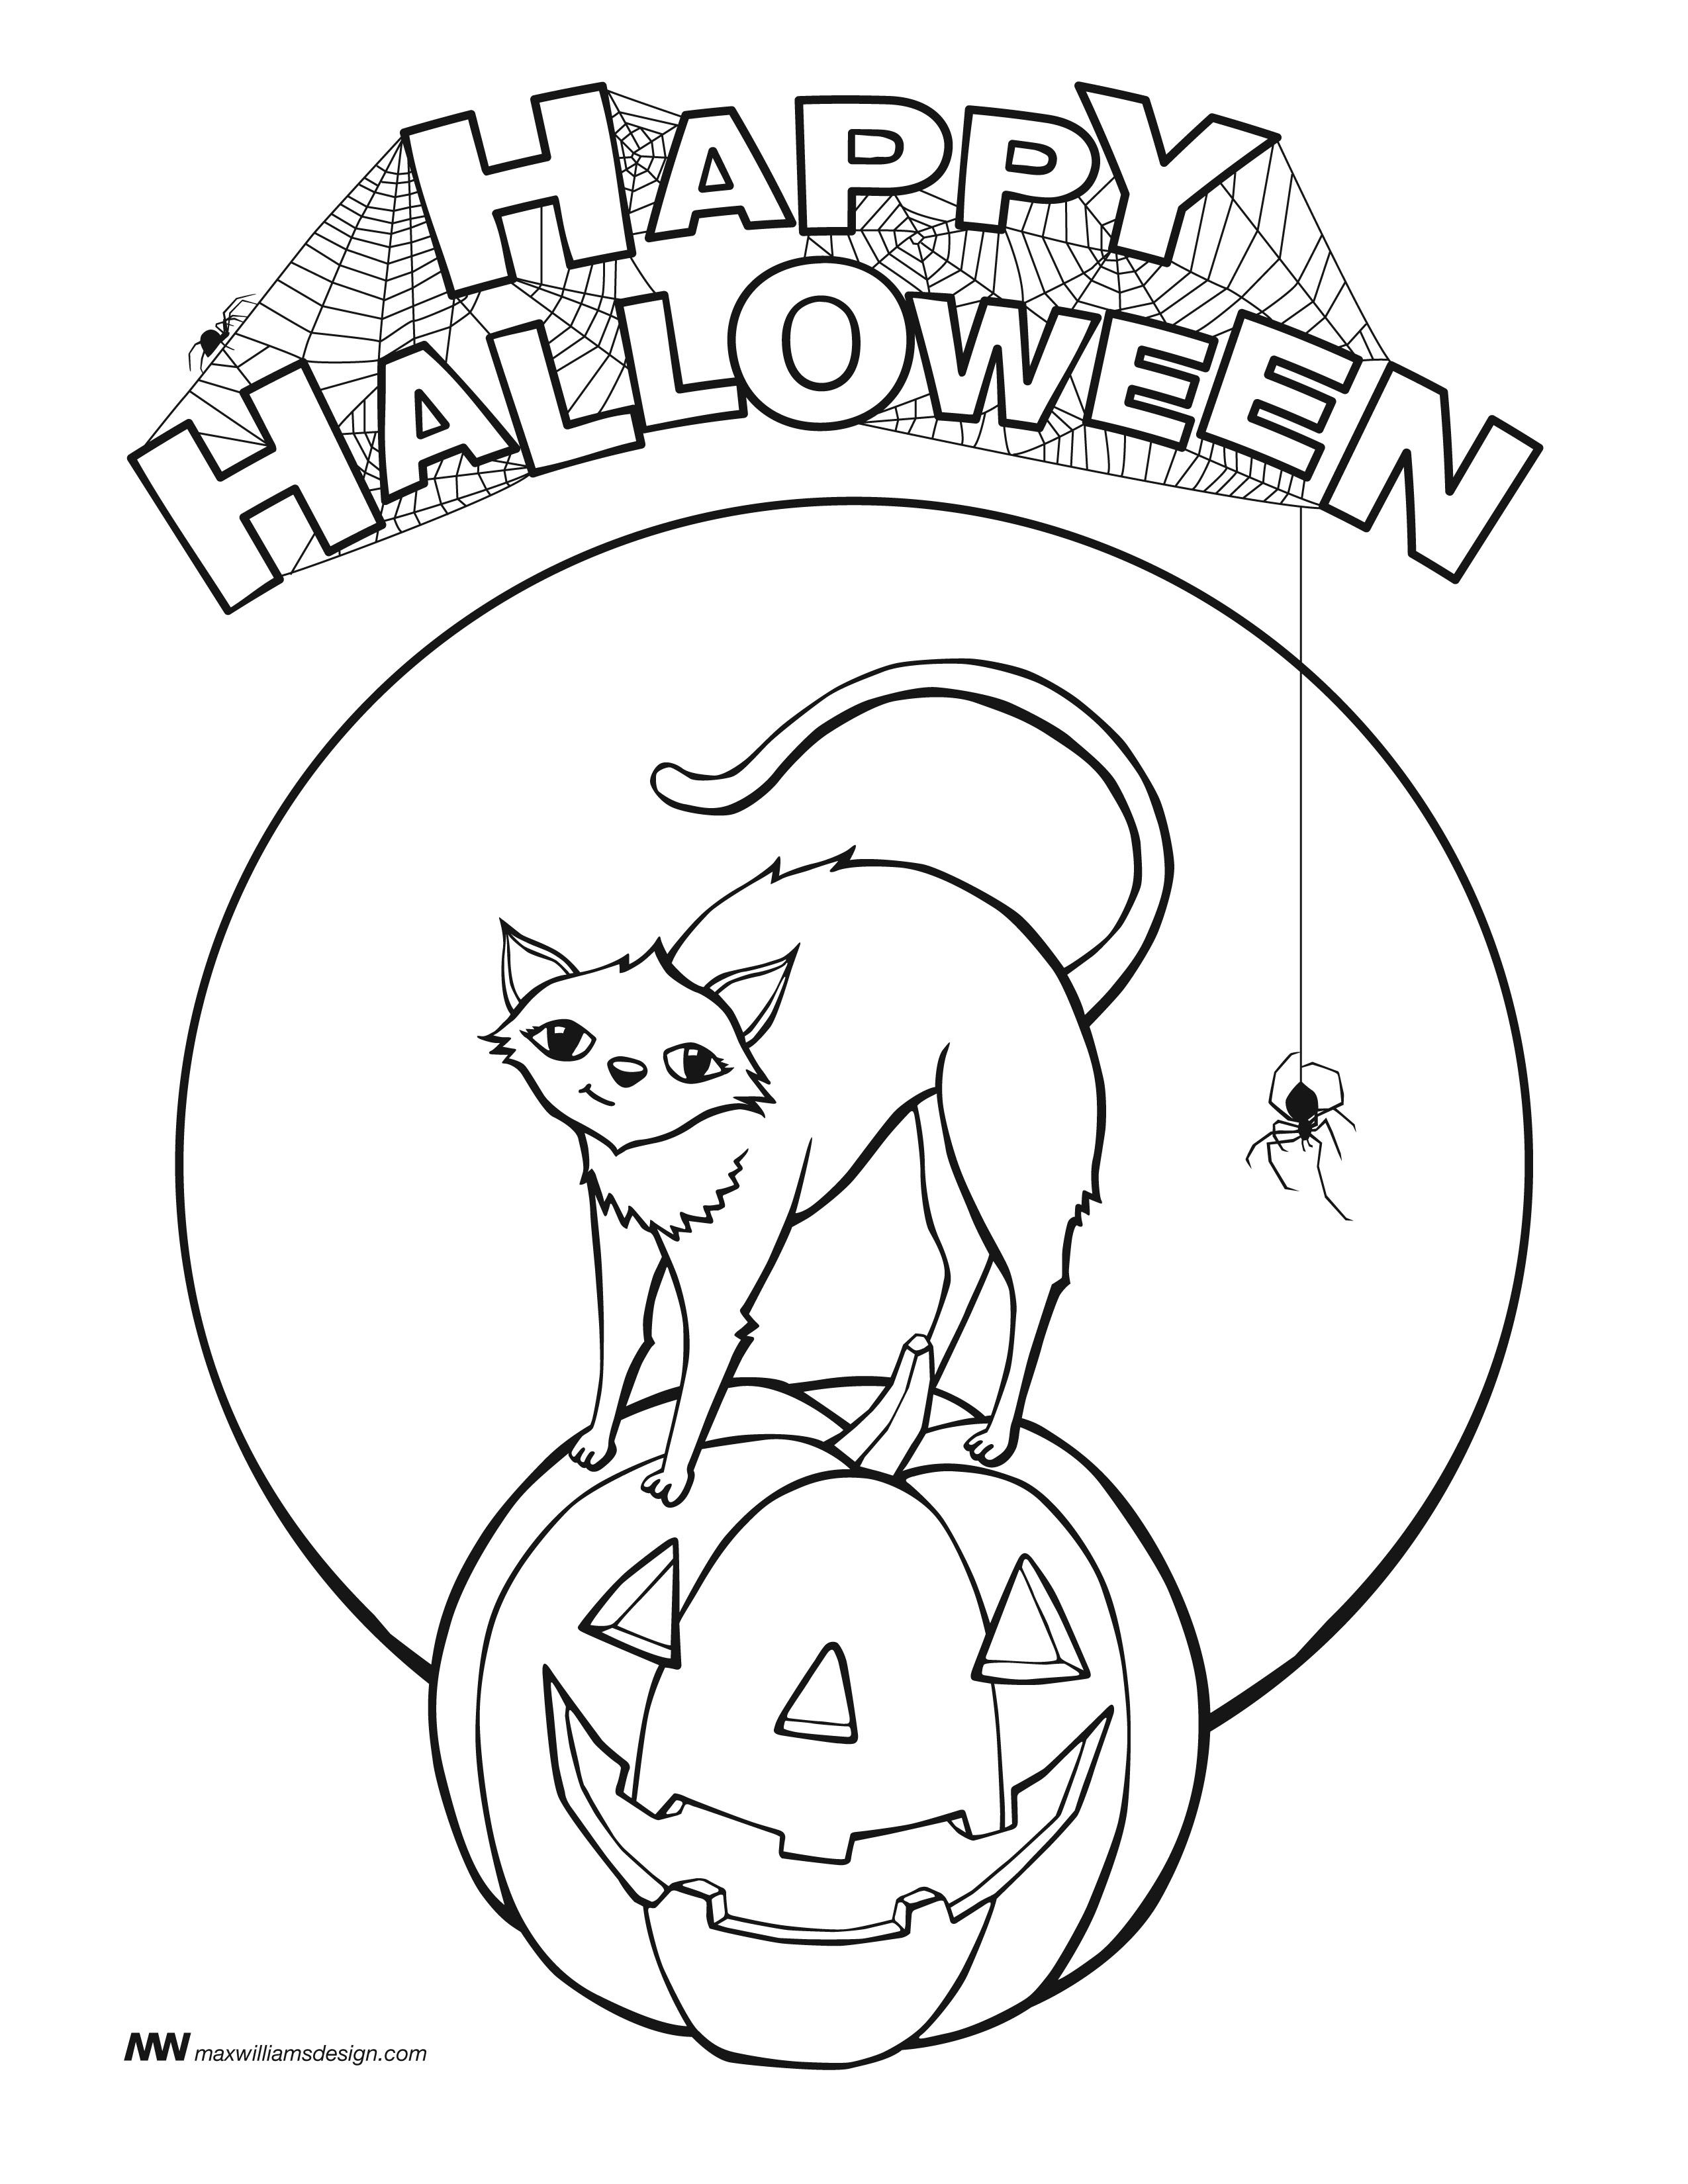 Halloween Coloring Pages Happy Halloween! Free Coloring